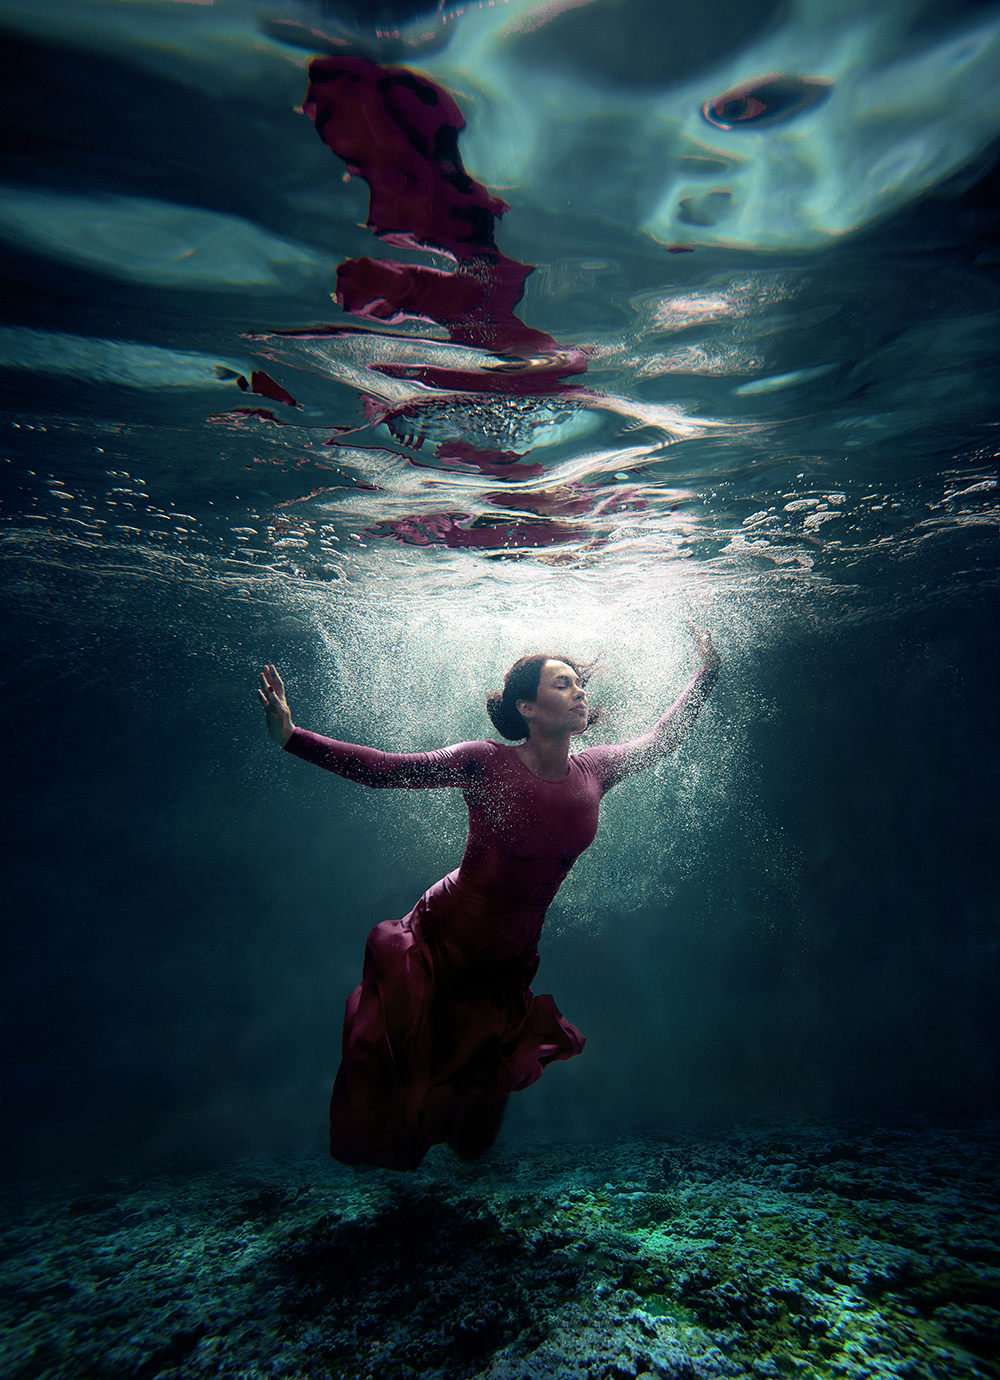 stylish-and-romantic-underwater-photography-by-glory-grebenkin-5